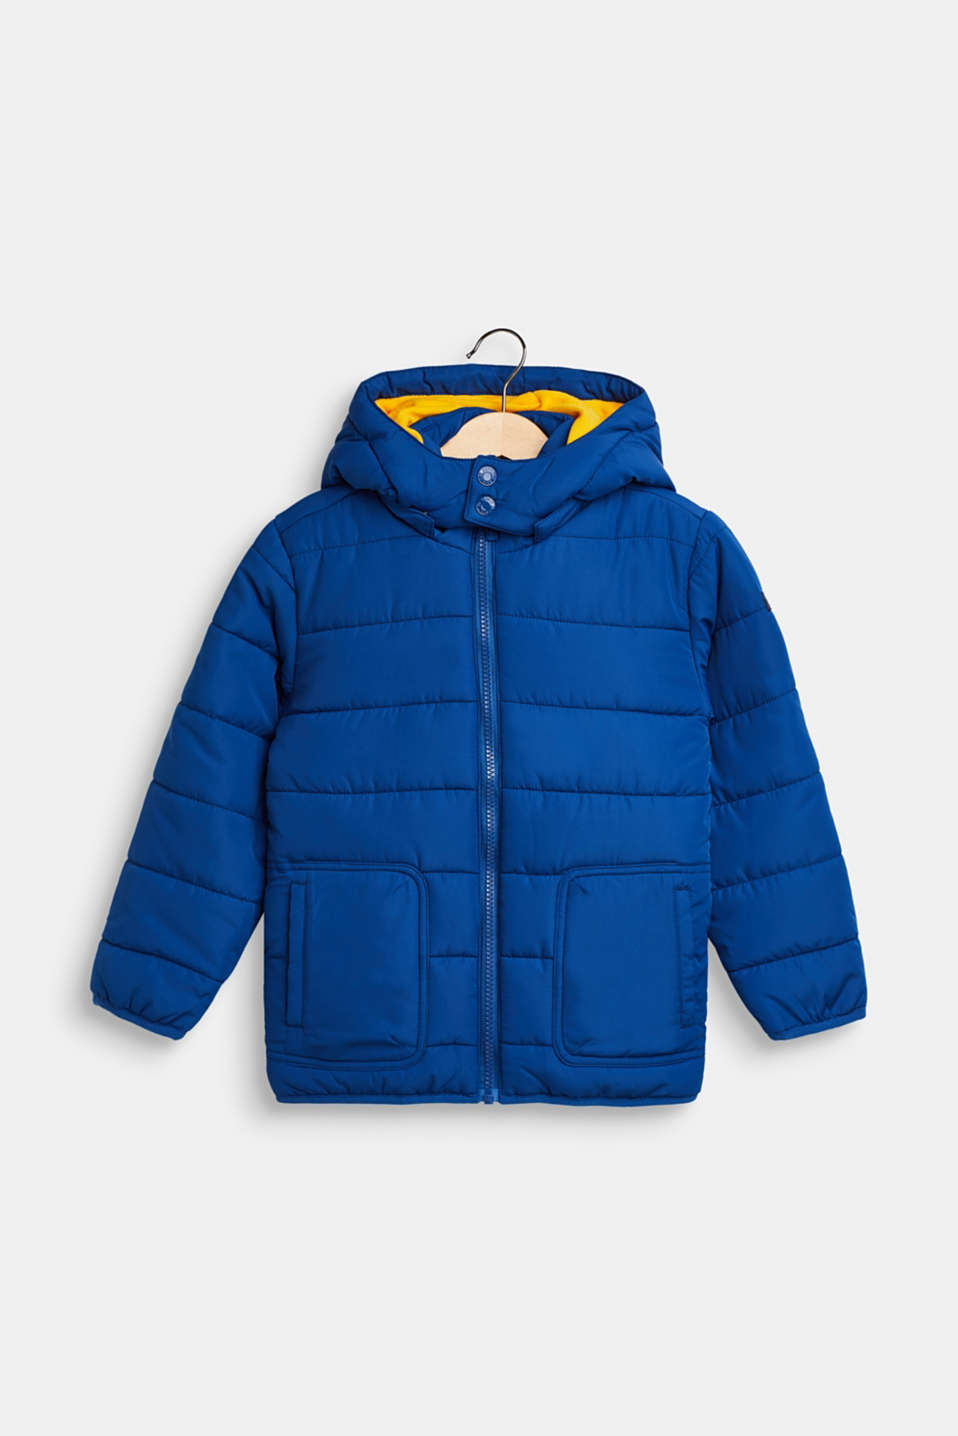 Esprit - Jacket with fleece lining and adjustable hood